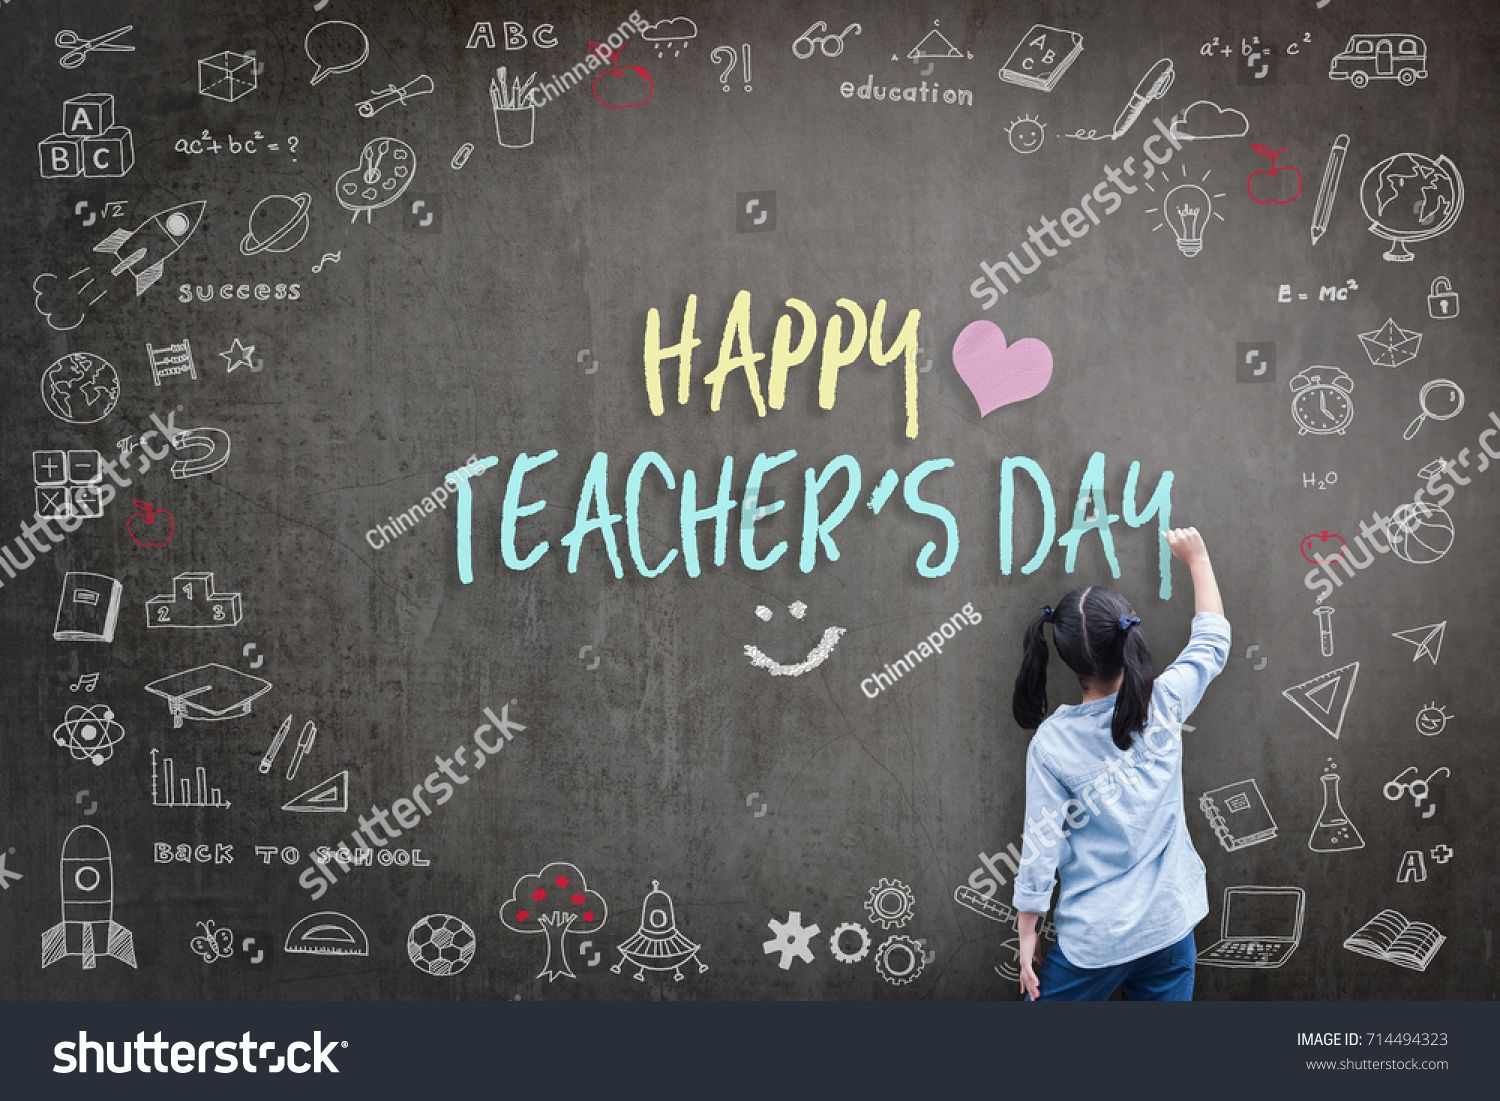 Happy Teacher S Day Greeting Card For World Teachers Day Concept With School Student Back View Drawing Doodle Of Of Learning Education Graphic Freehand Ill Thiệp